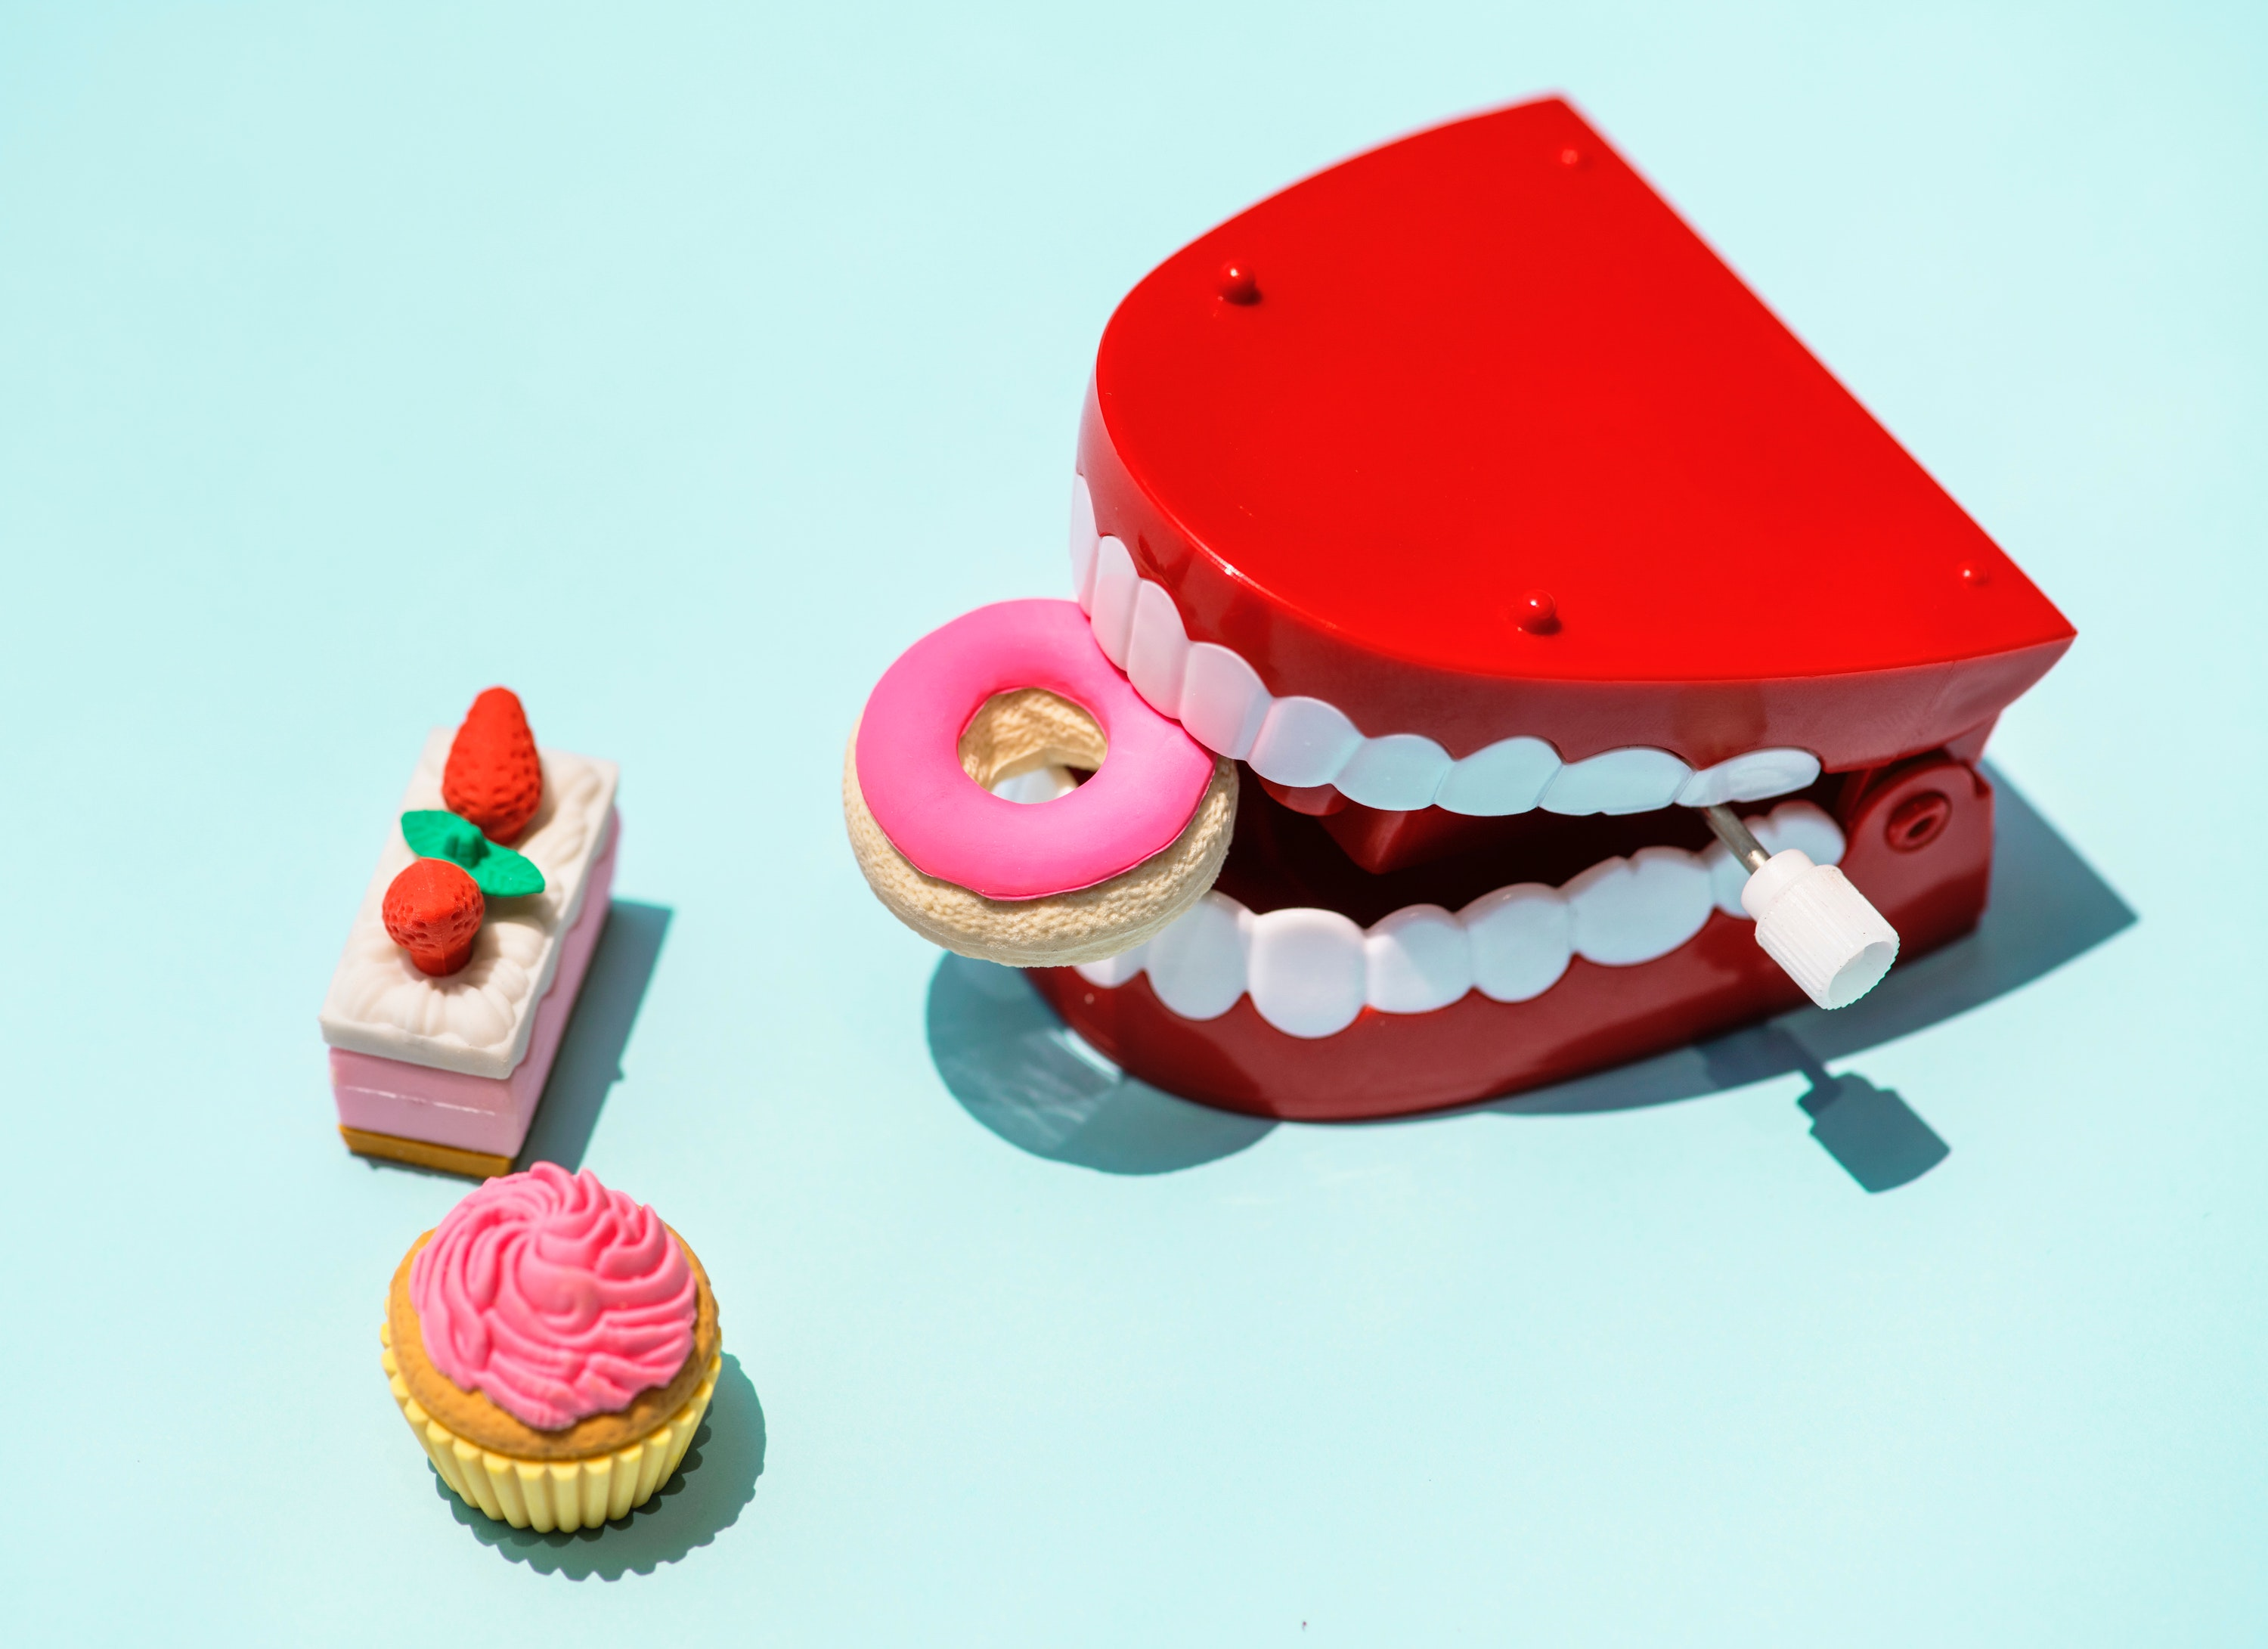 Stock image of toys shaped as food being eaten by mechanical teeth